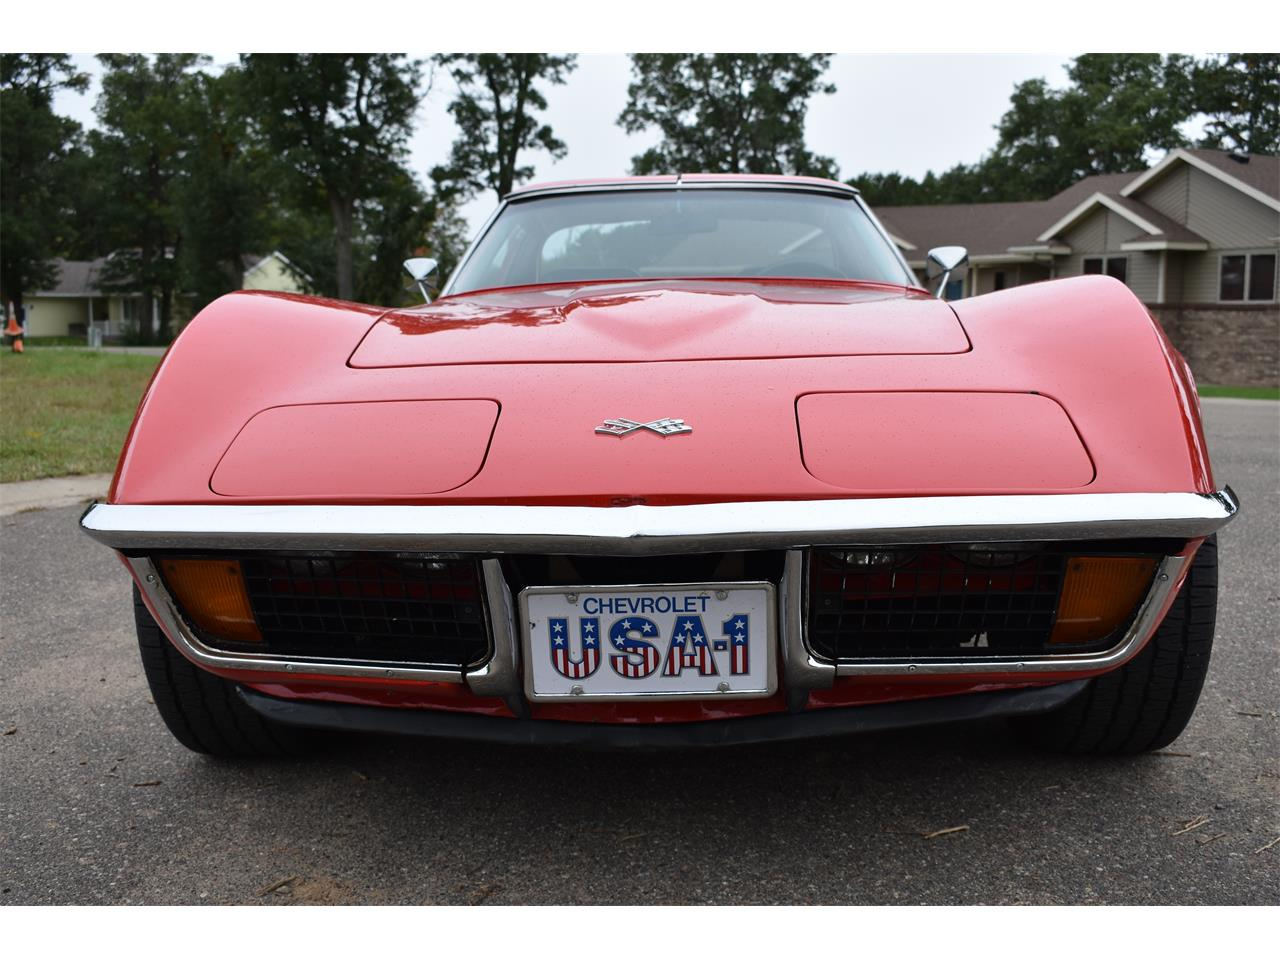 Large Picture of Classic '72 Chevrolet Corvette - $27,000.00 Offered by a Private Seller - OMCE